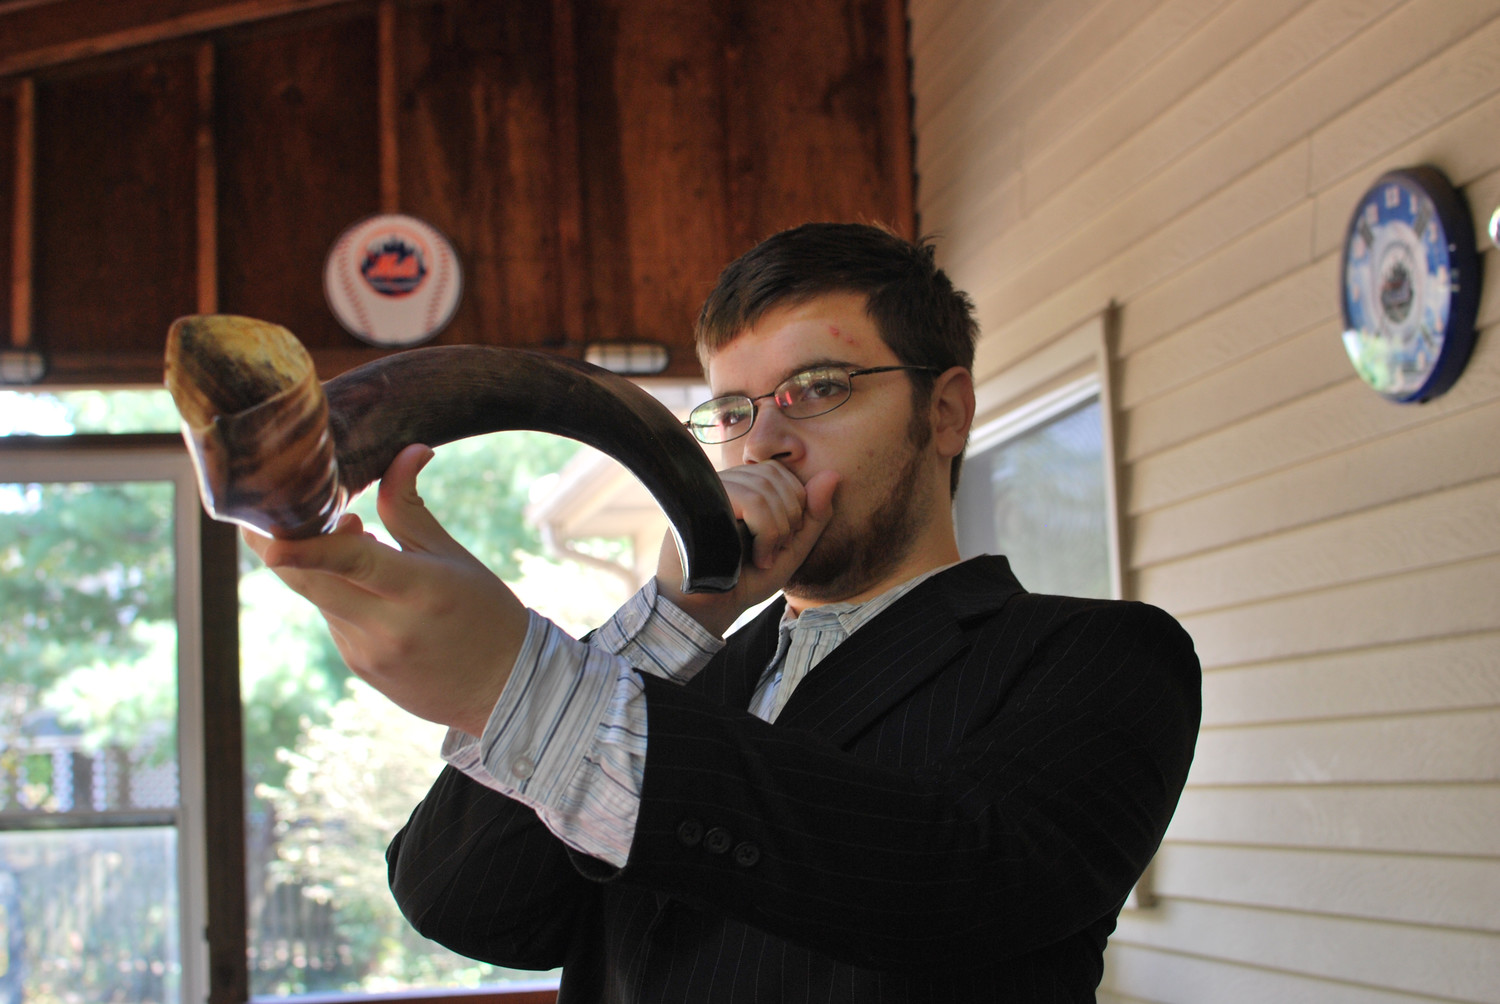 Man blowing a shofar, or ram's horn, on Rosh Hashanah